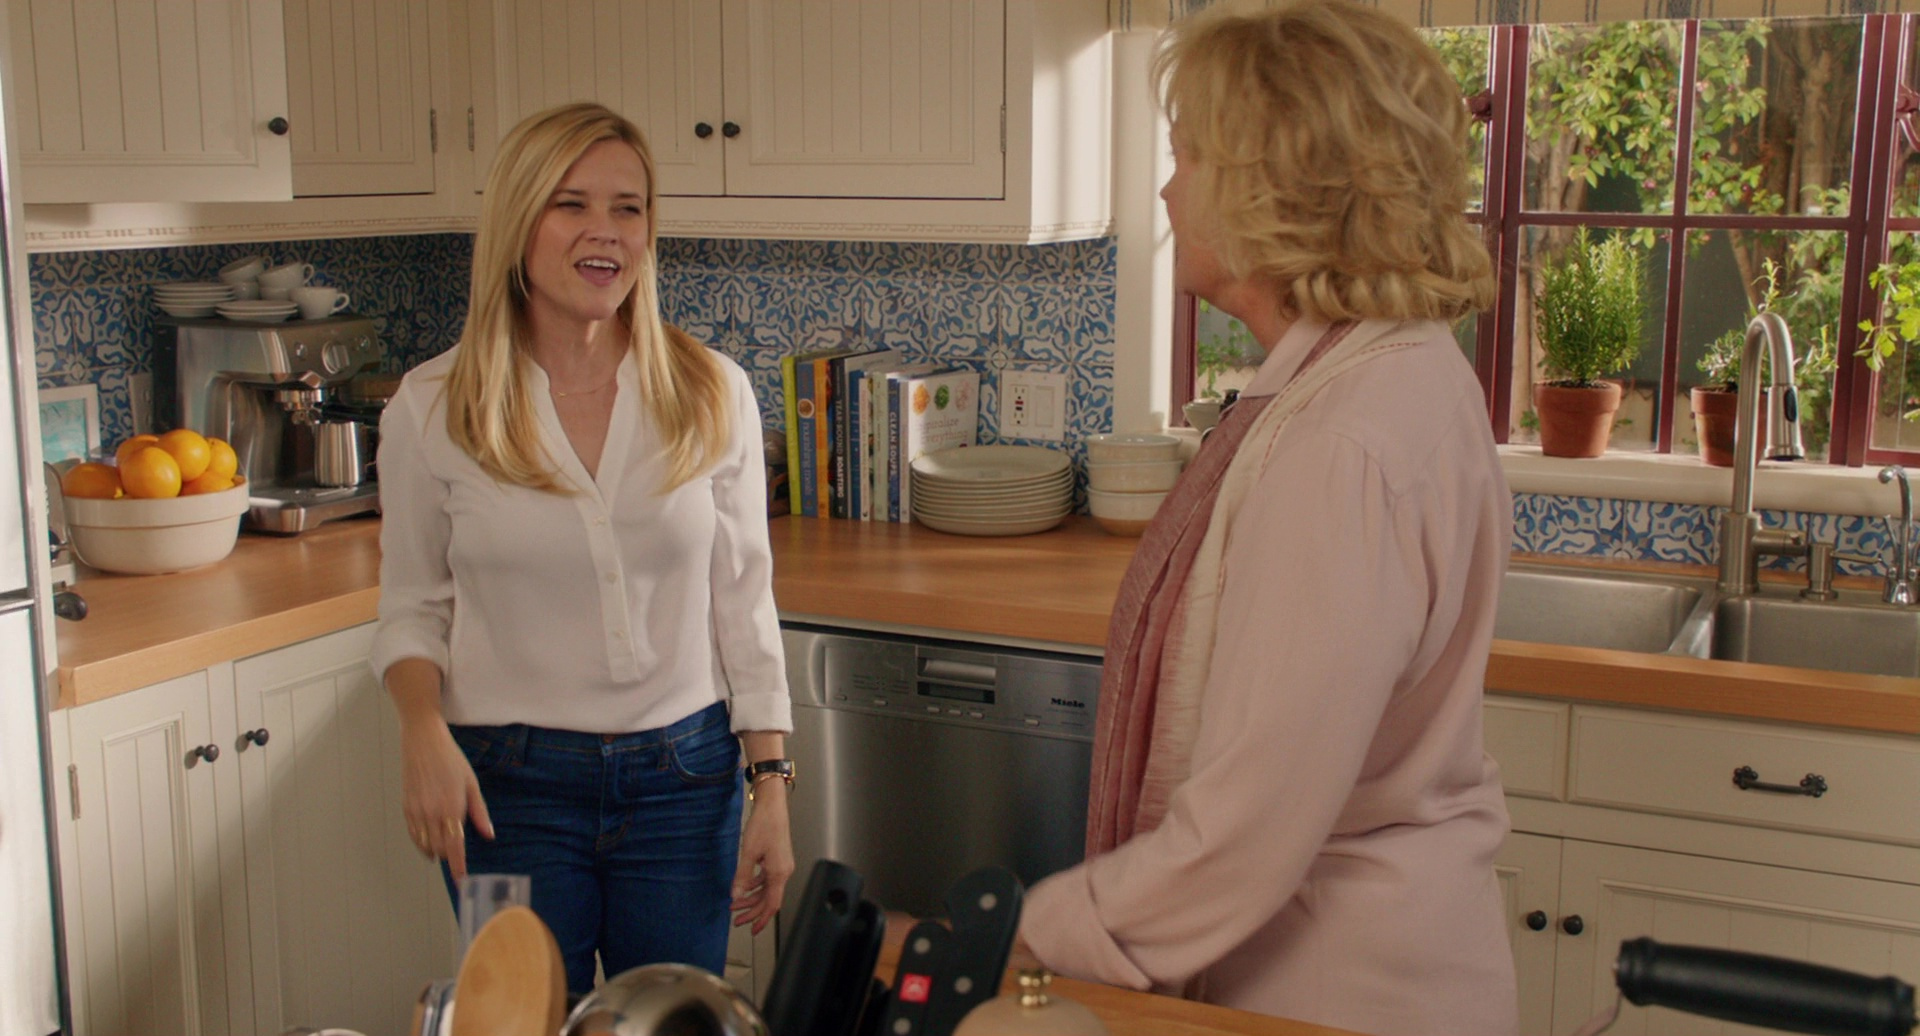 Seen In The Movie Miele Dishwasher Used By Reese Witherspoon In